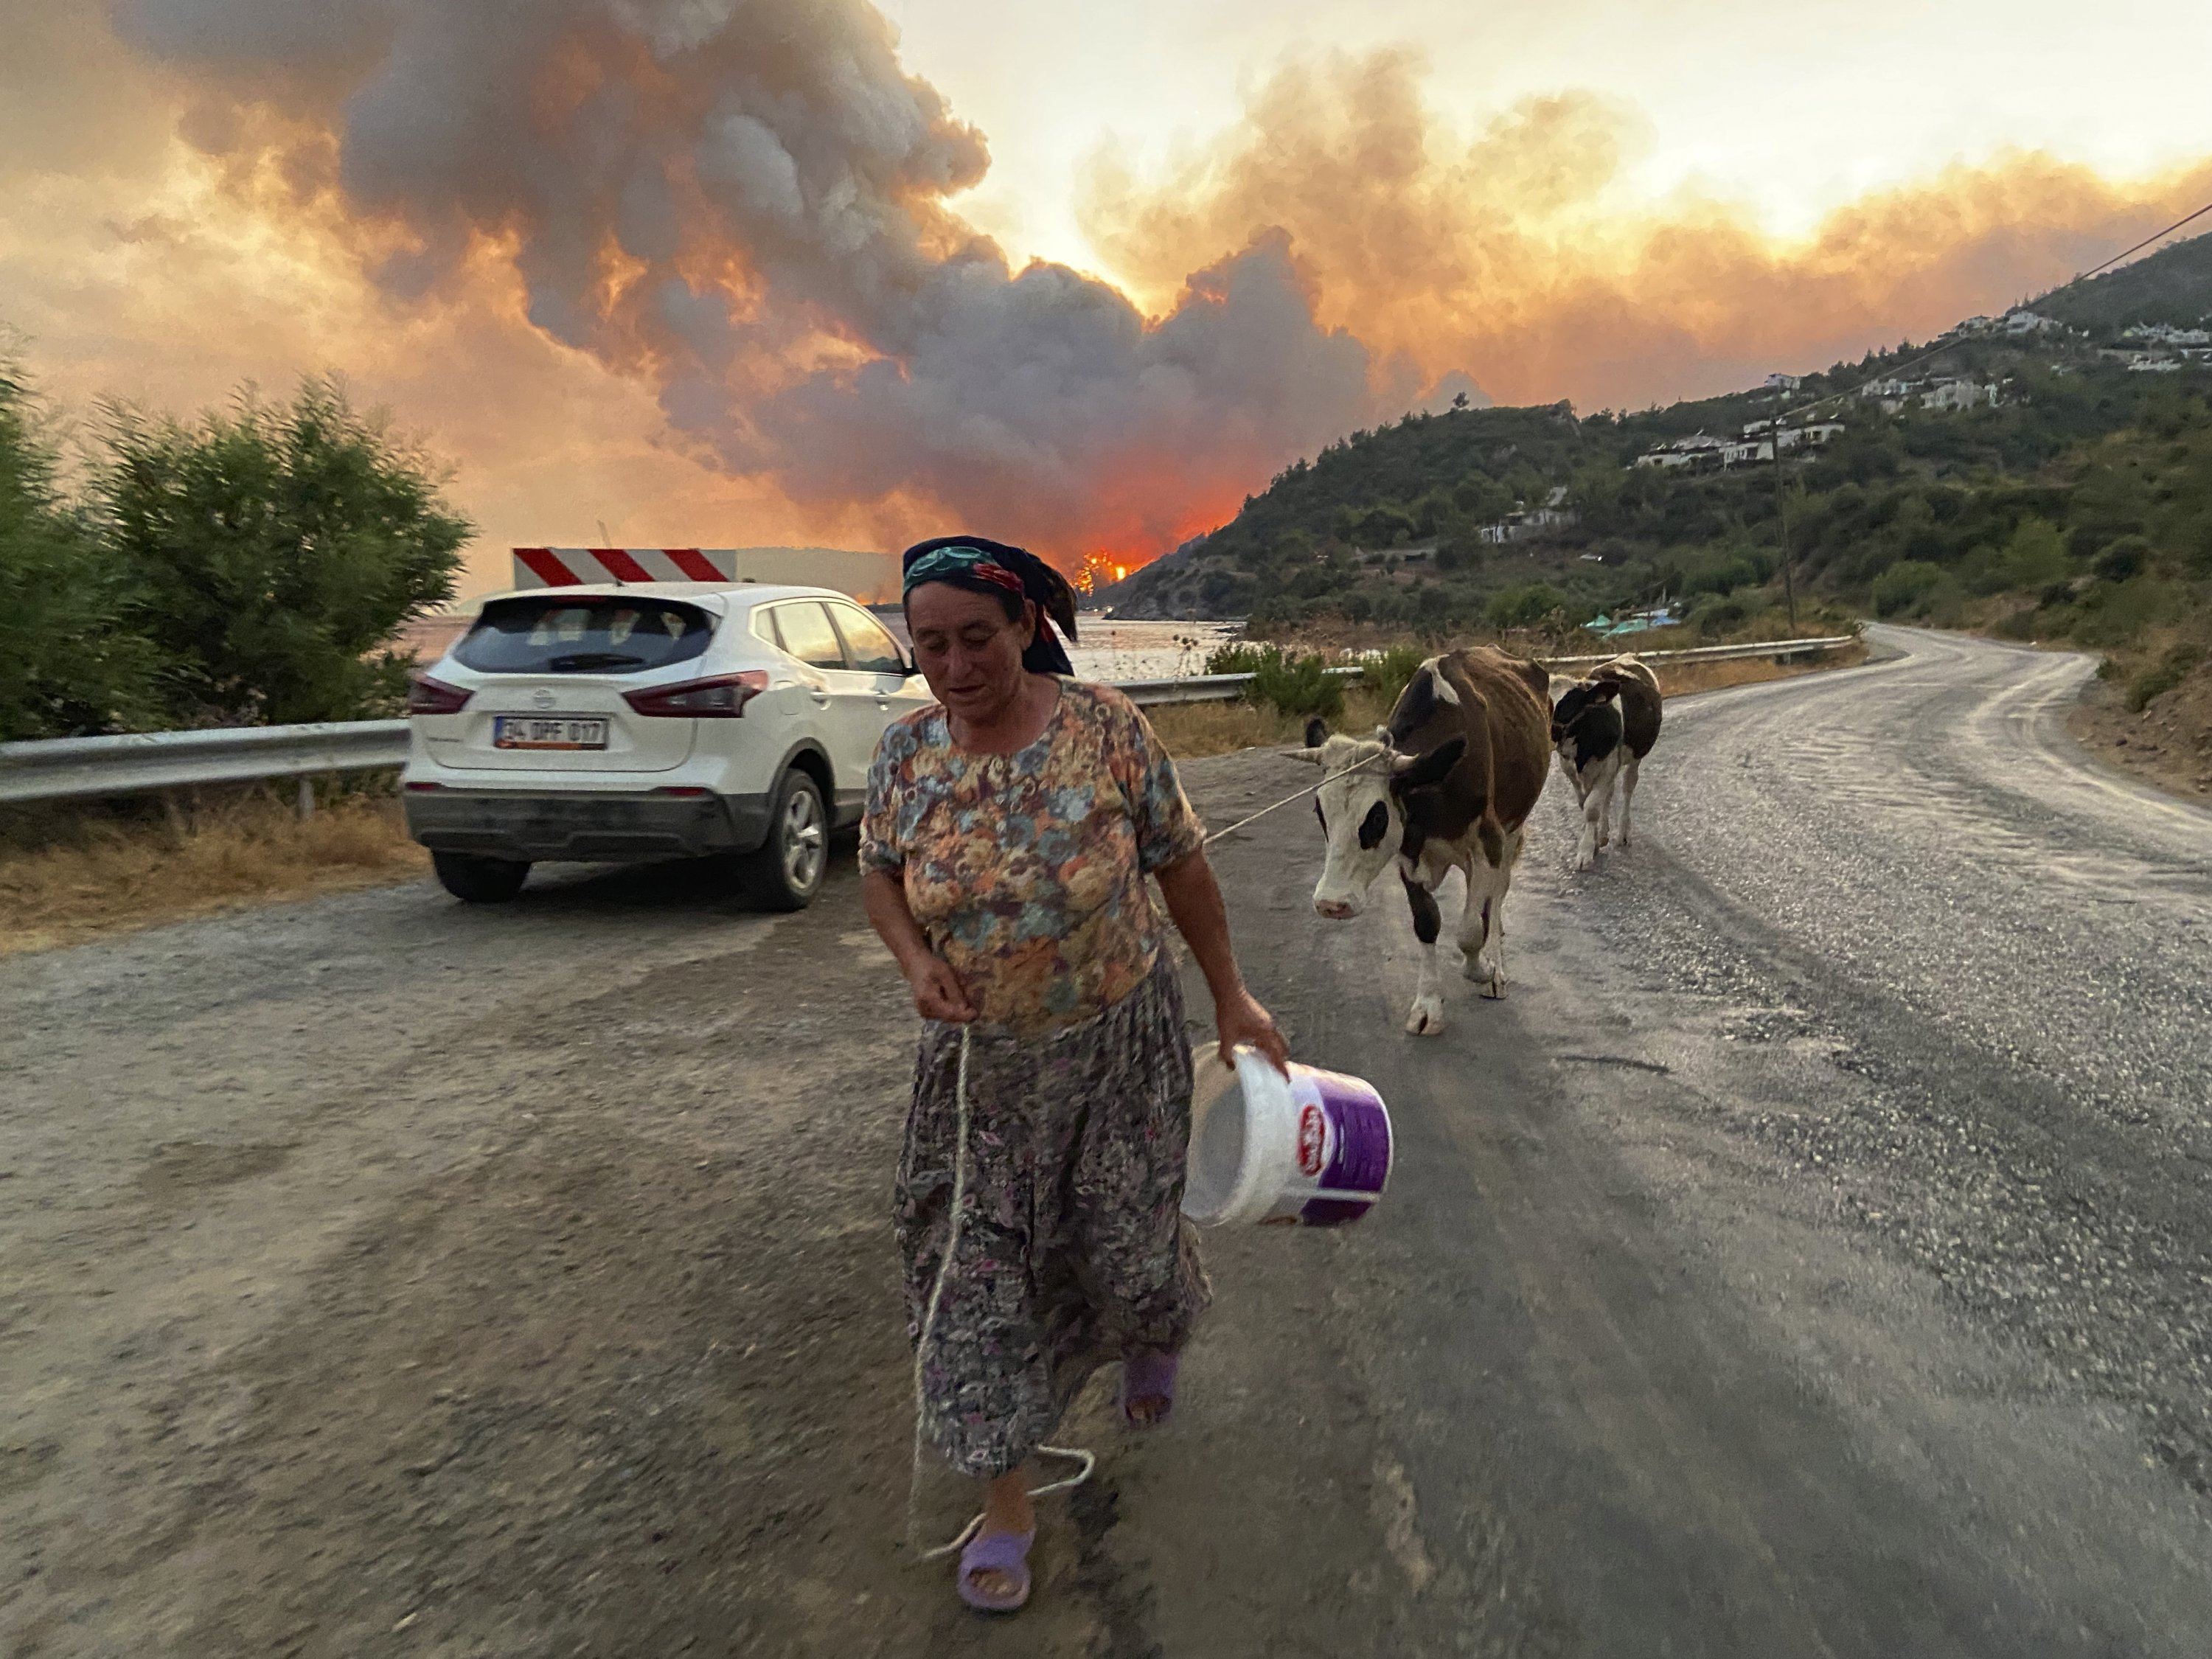 A woman leaves with her animals from an advancing fire raging in the Çökertme neighborhood, near Bodrum, in Muğla, southwestern Turkey, Aug. 2, 2021. (AP PHOTO)